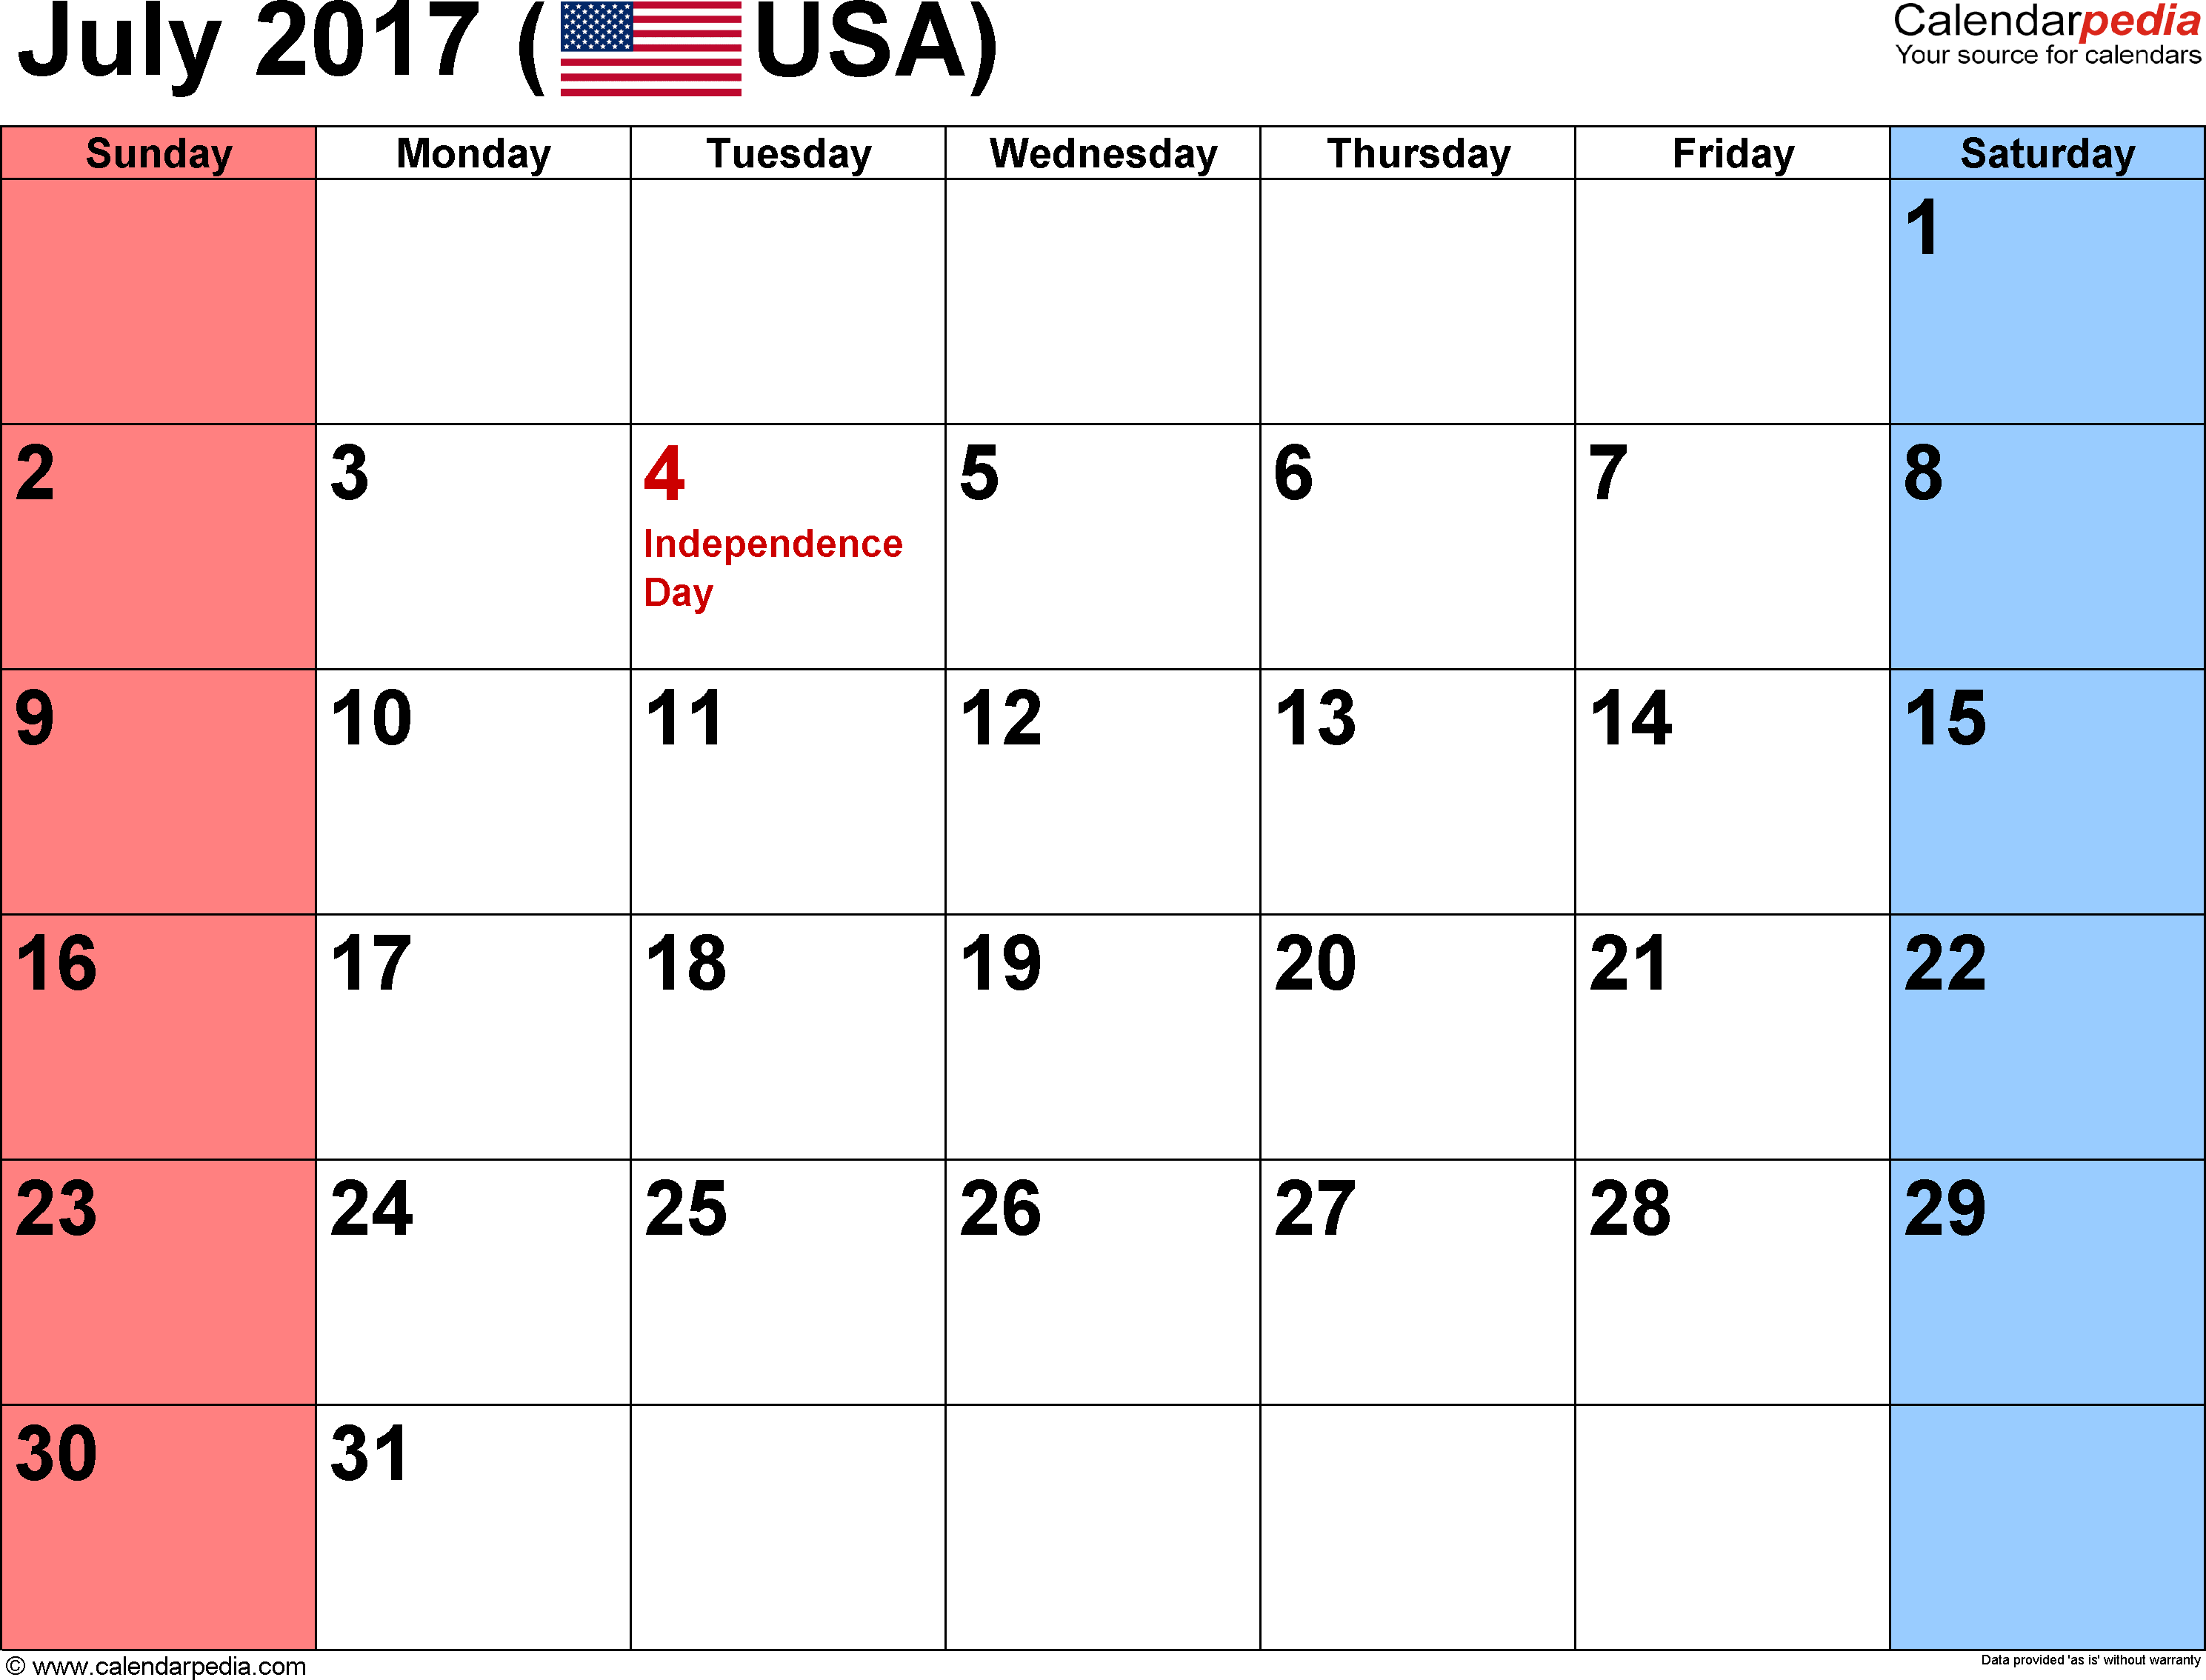 July 2018 Calendar USA Holidays